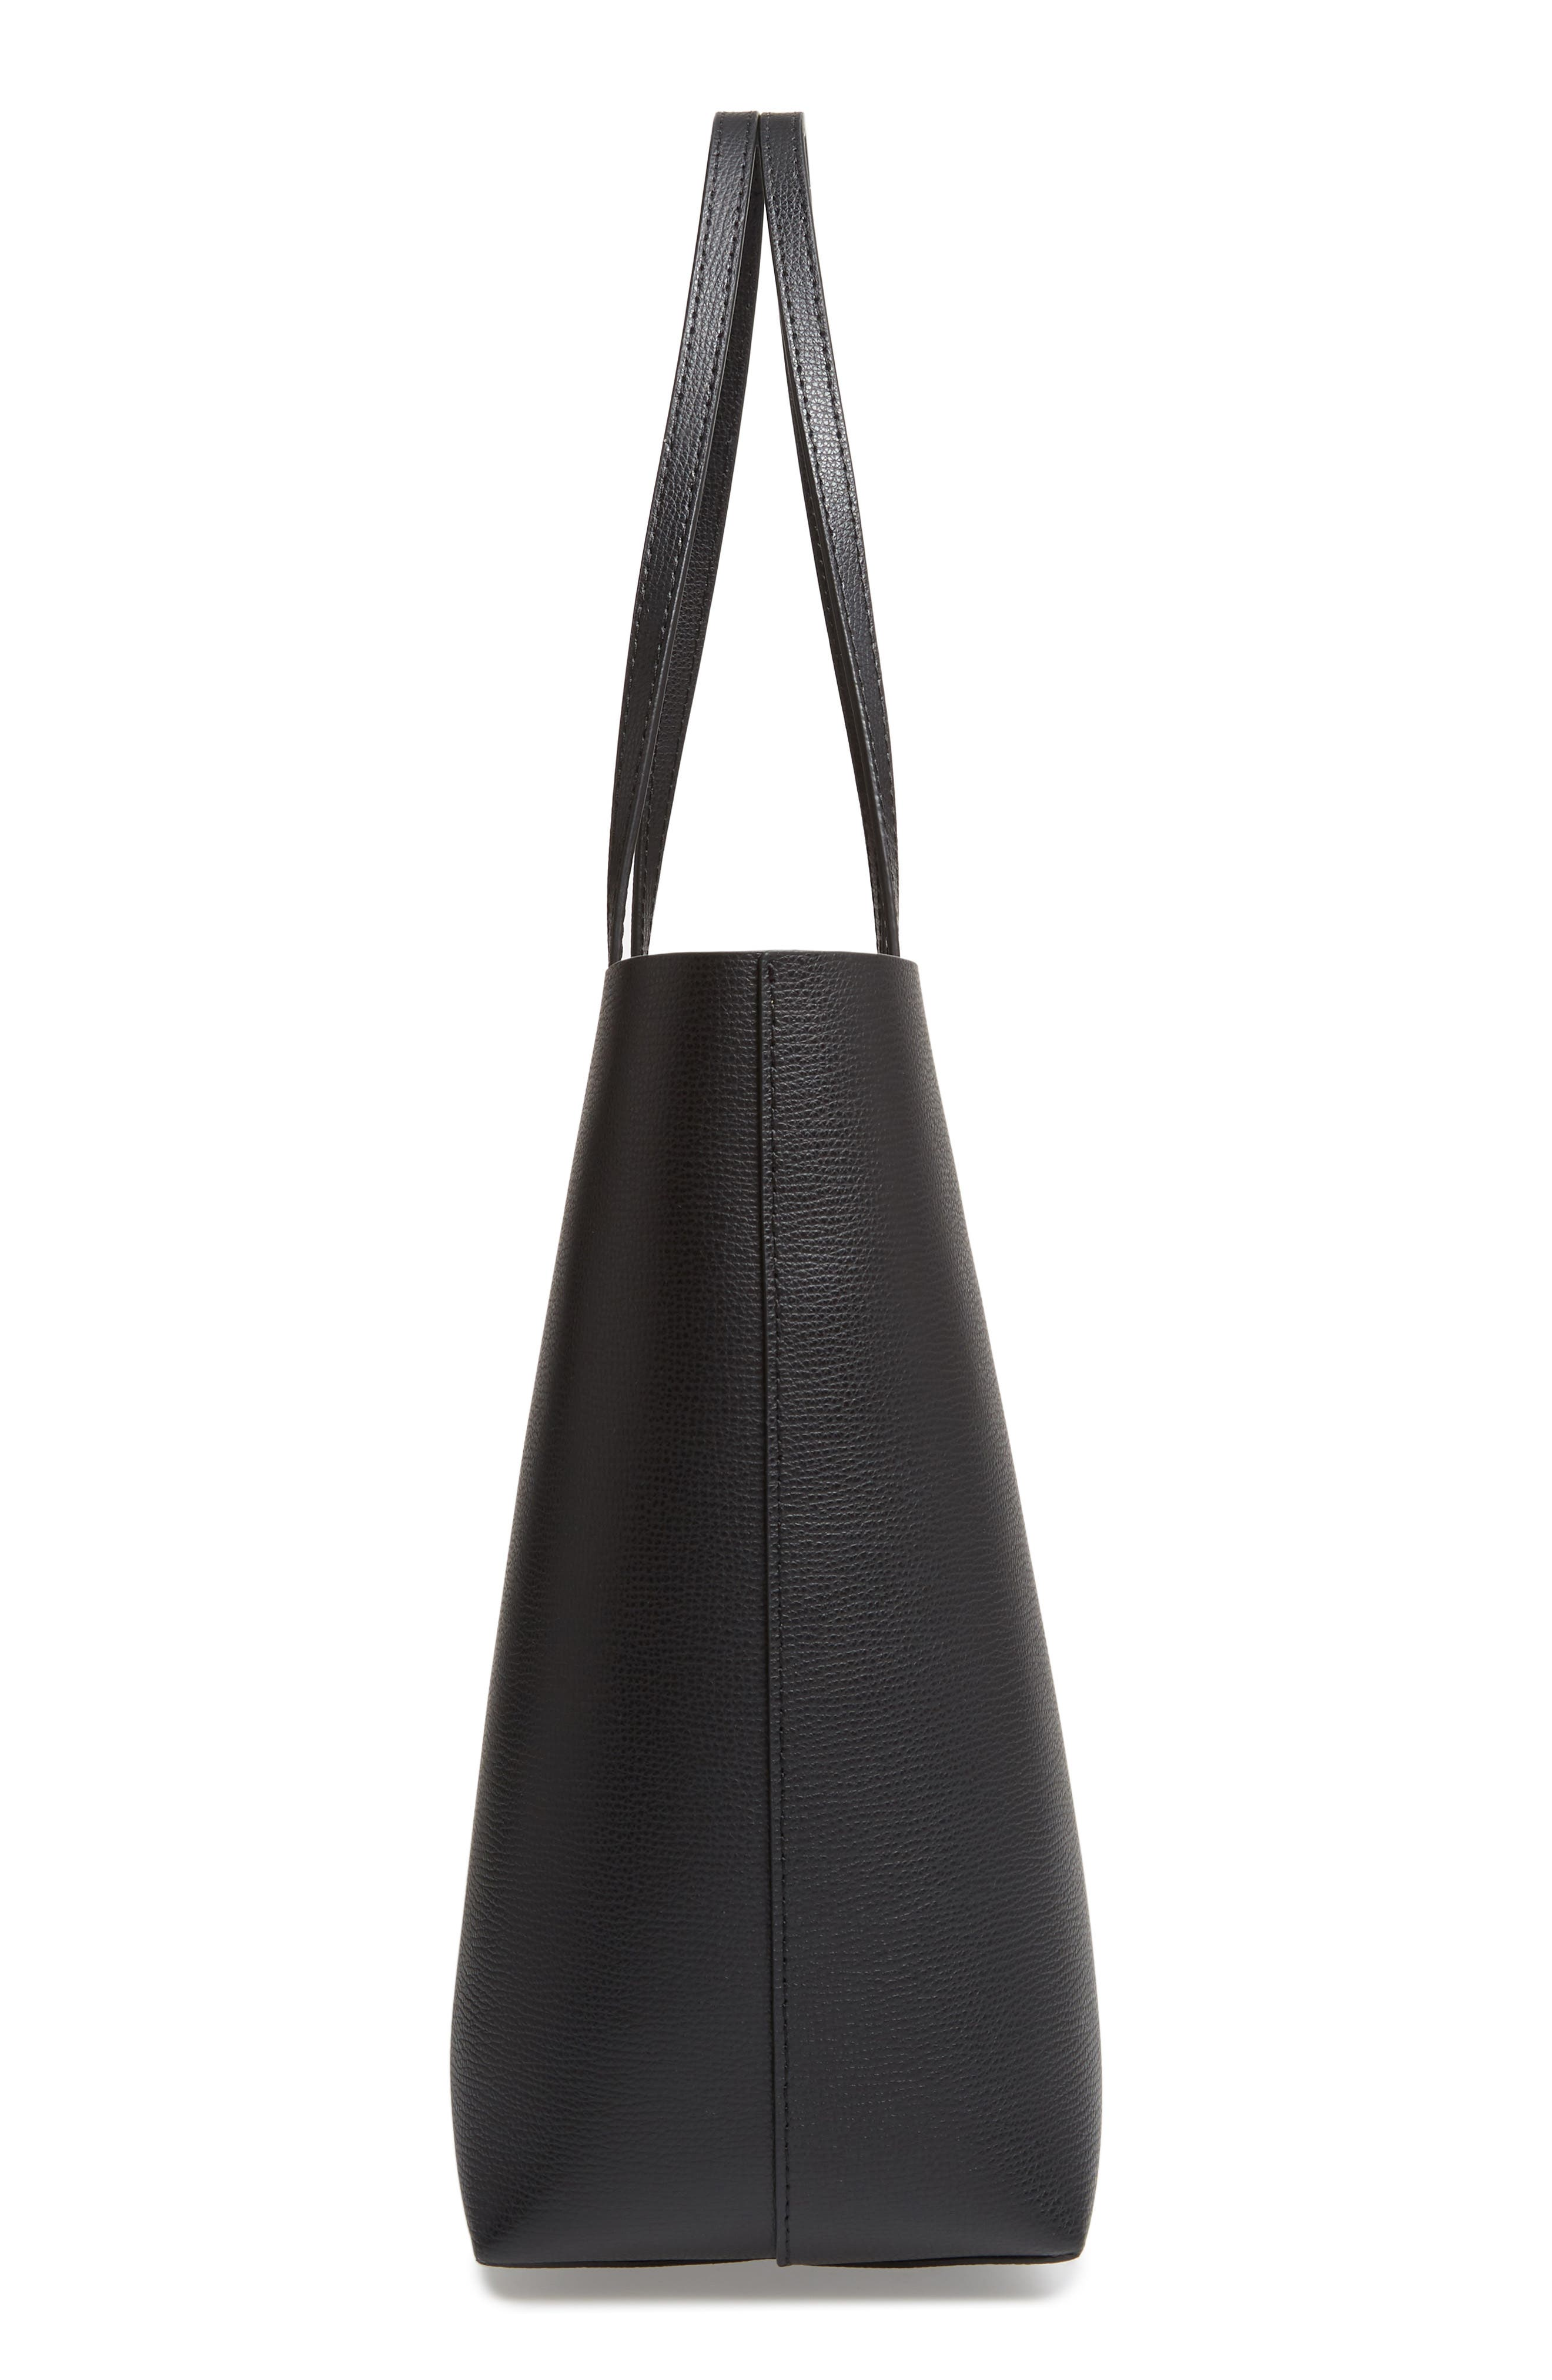 KATE SPADE NEW YORK, large molly leather tote, Alternate thumbnail 6, color, BLACK